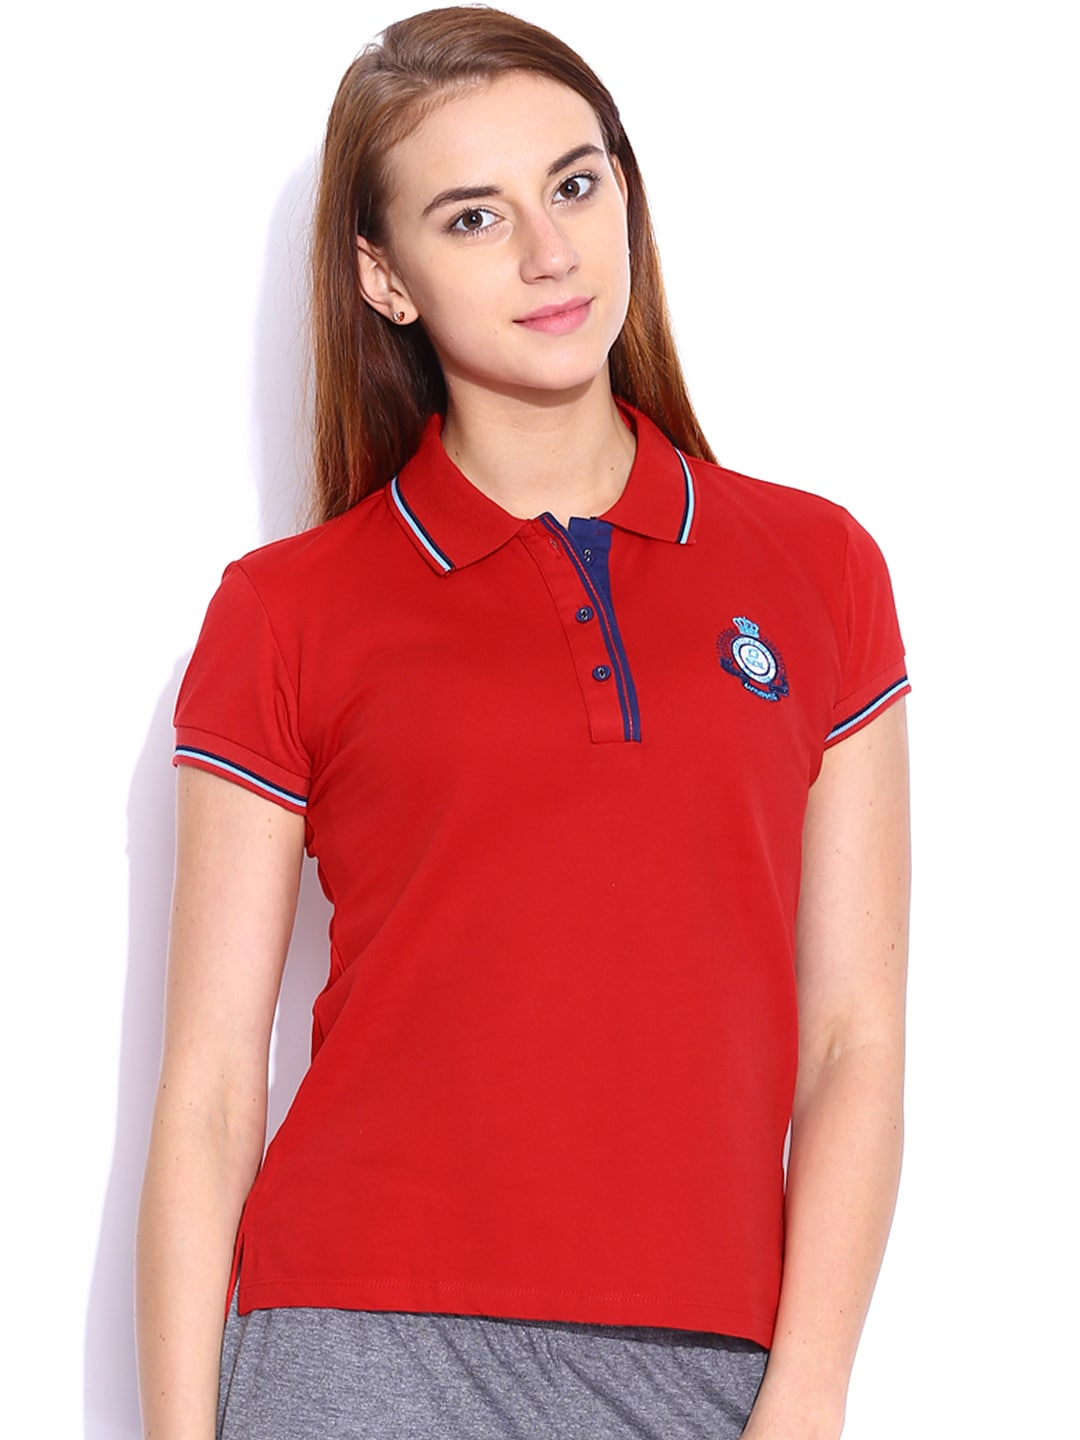 SDL by Sweet Dreams Red Polo T-shirt image